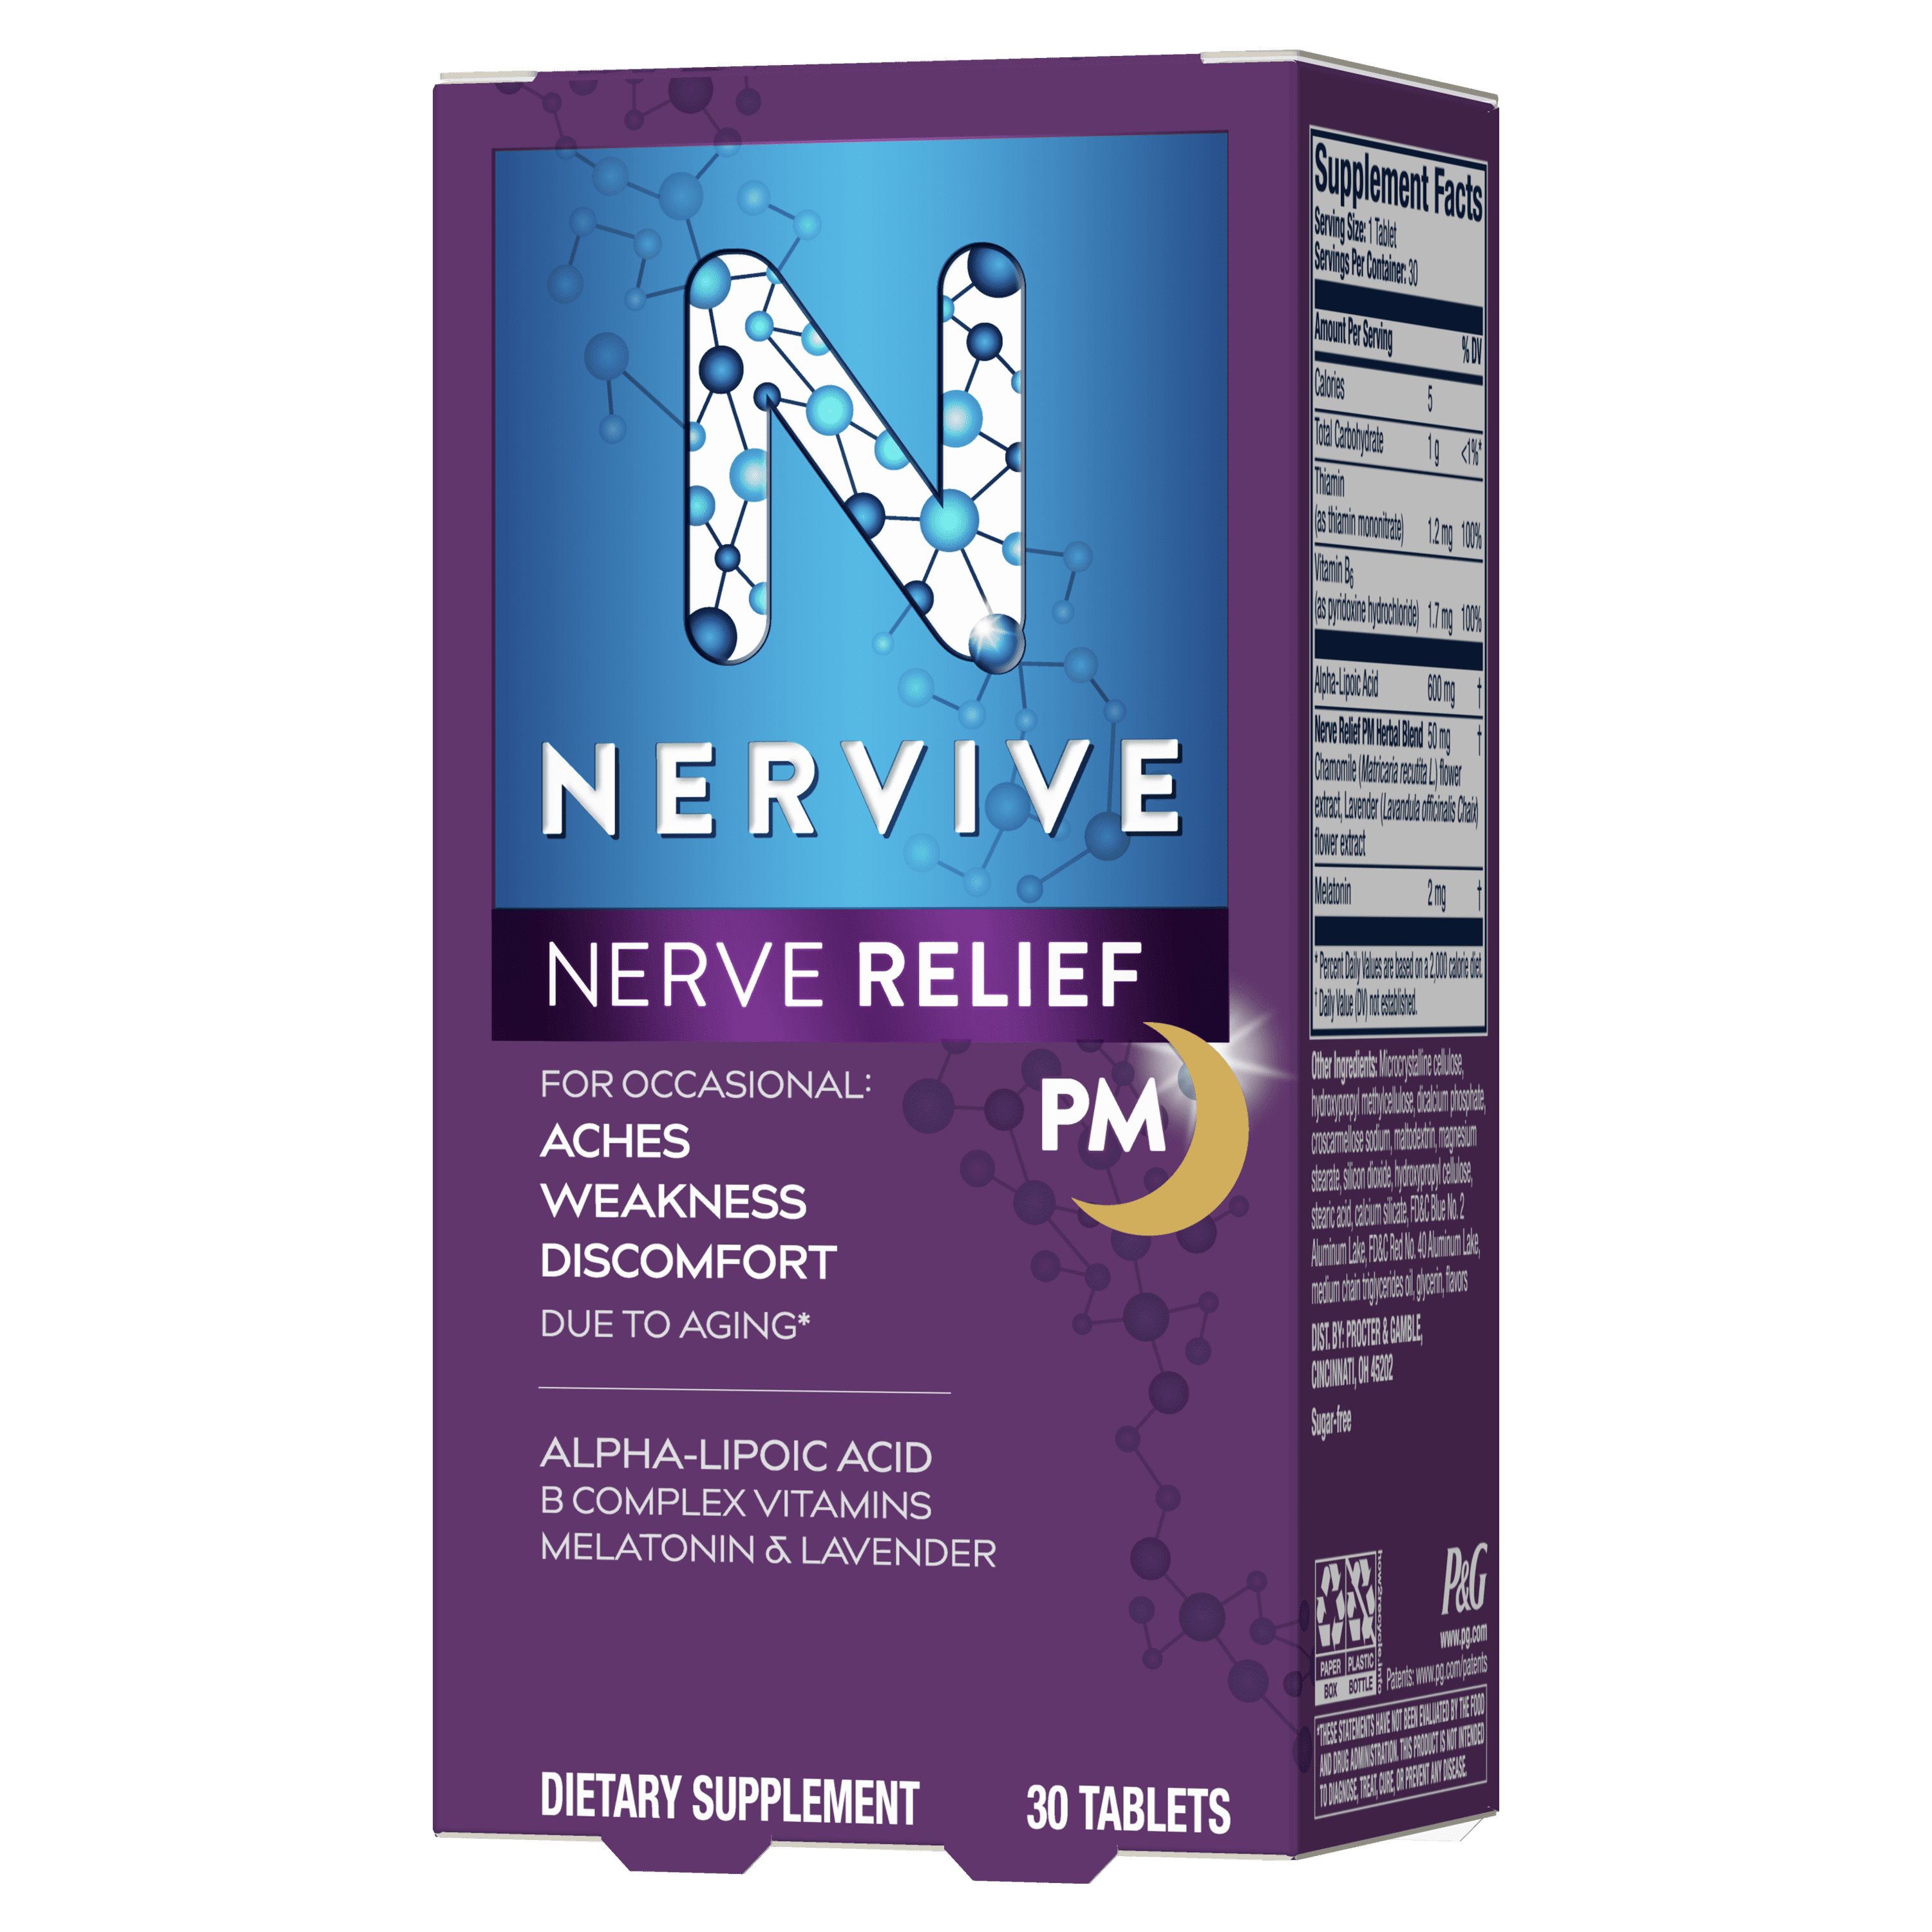 Nervive Nerve Relief PM Right View